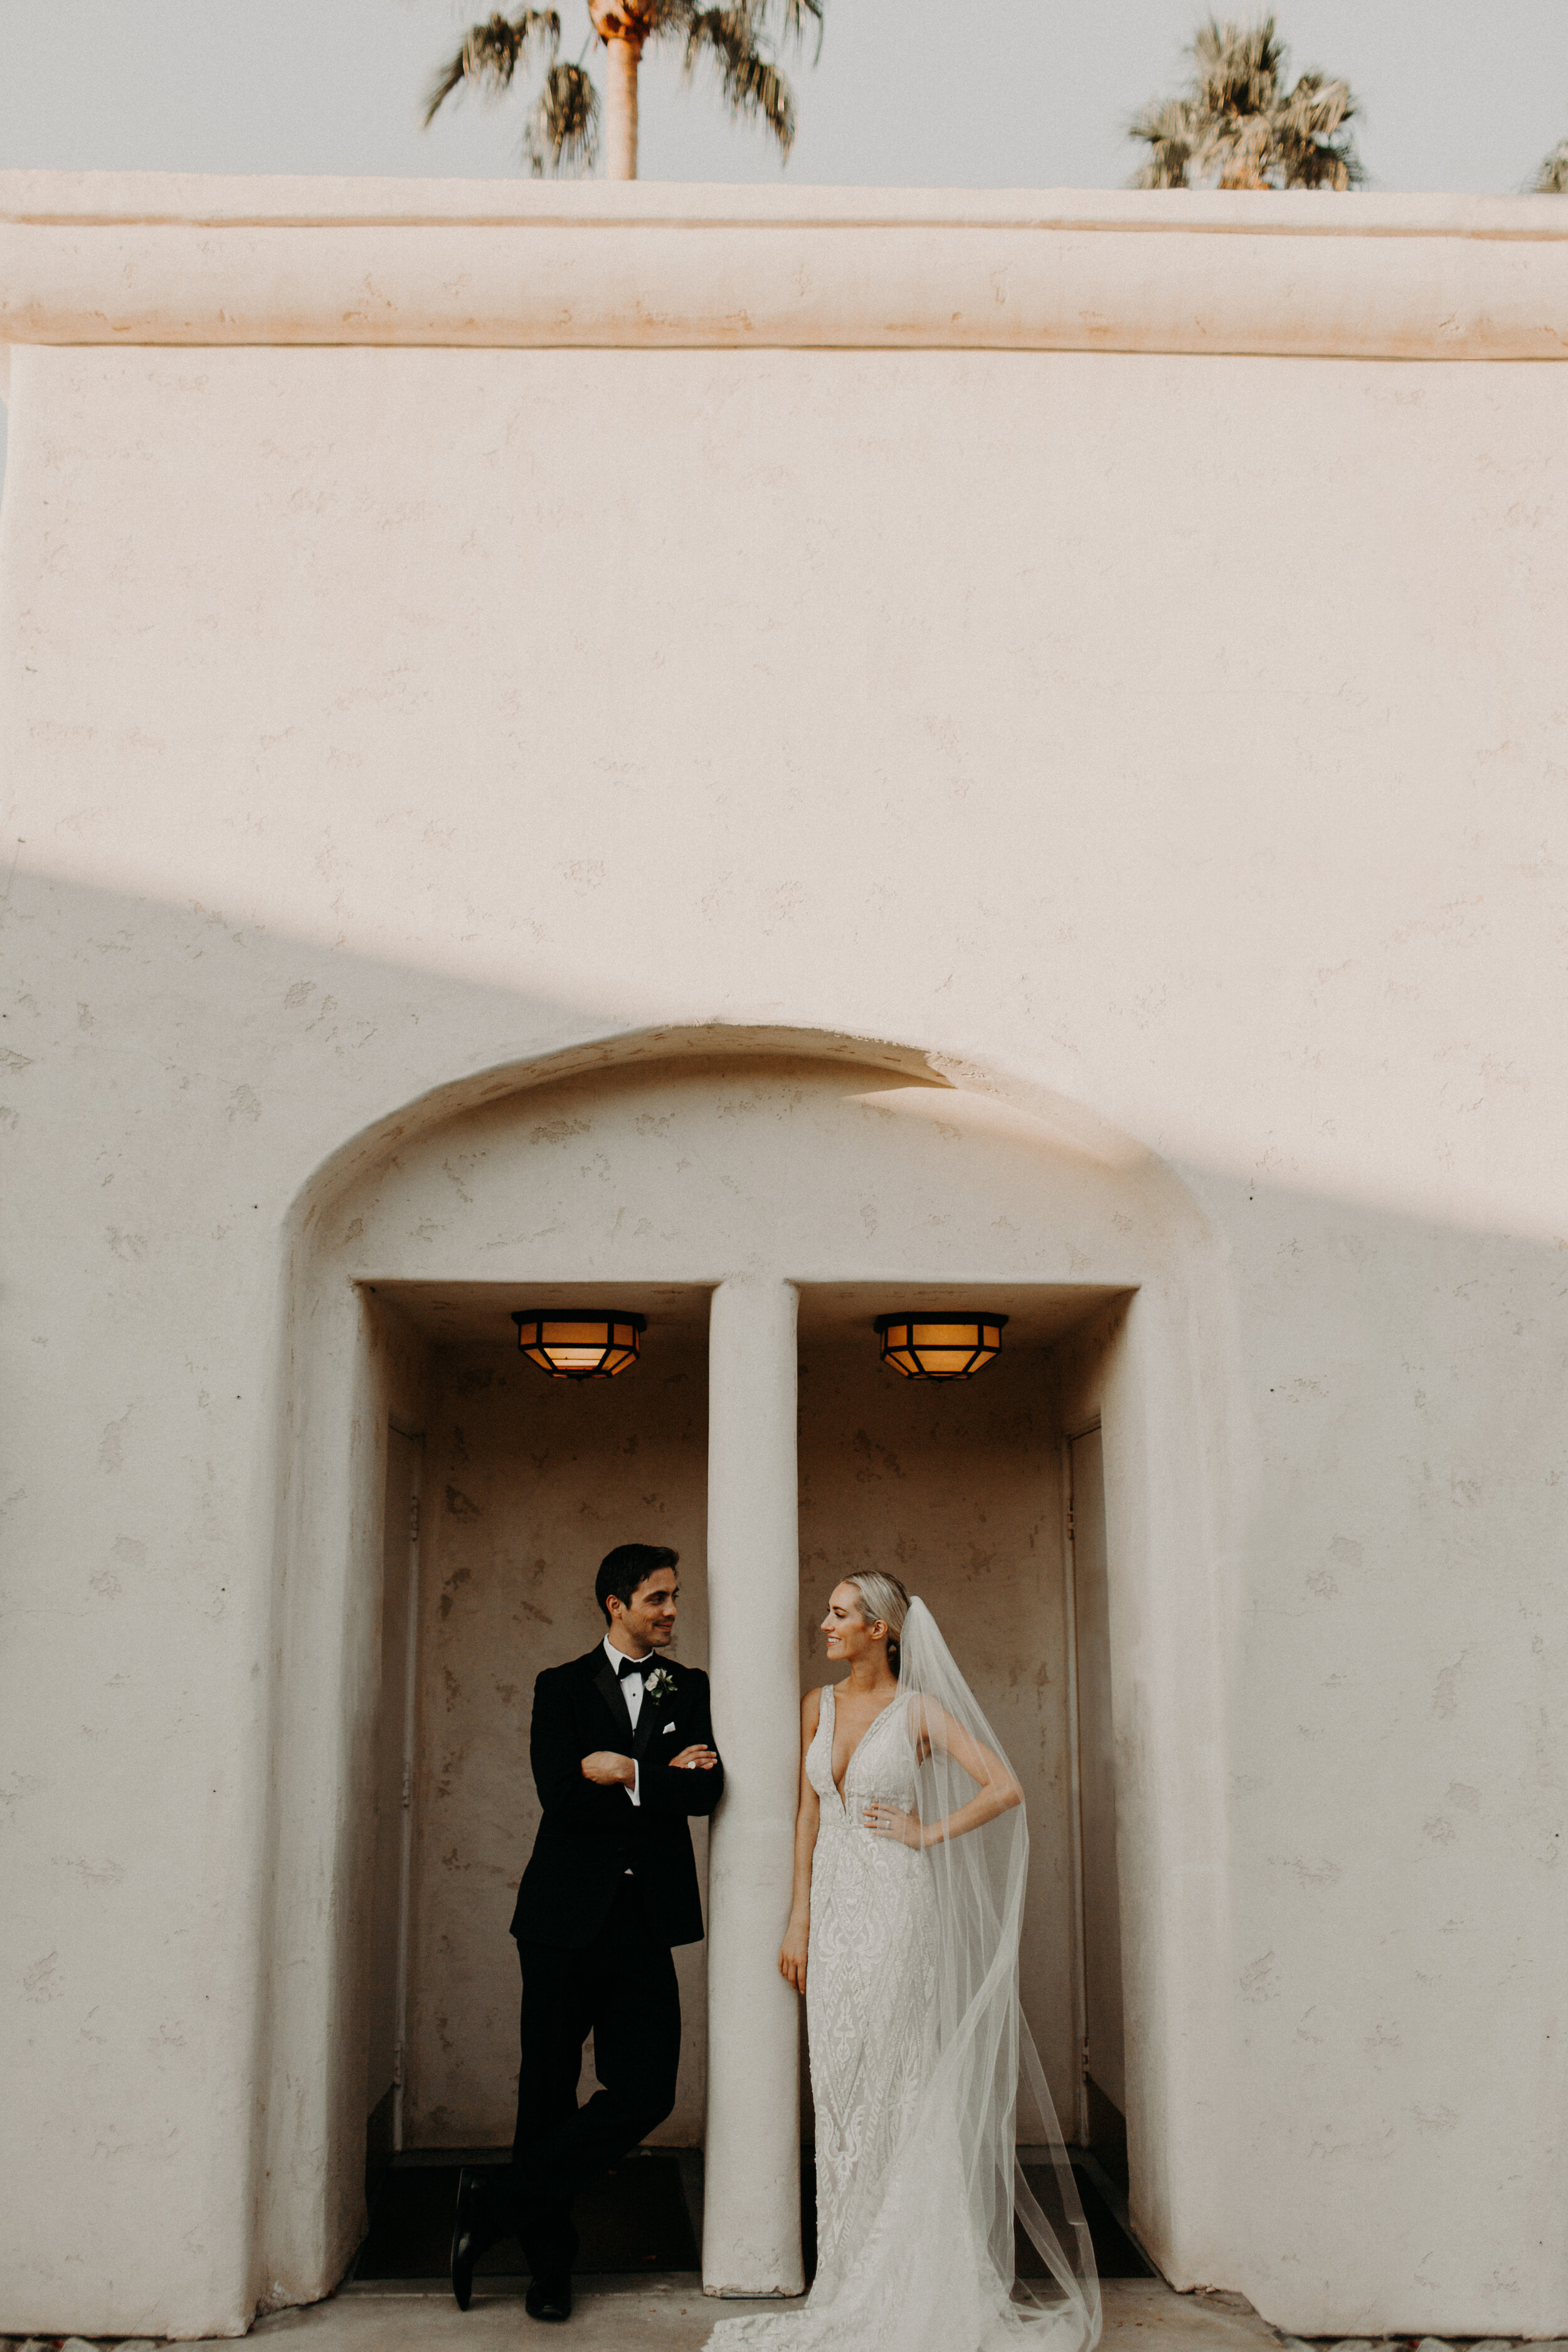 Morocco-Inspired Palm Springs Destination Wedding - Sam + Eddie are KNOCKOUTS. They hail from chilly Vancouver, BC and decided to have the desert wedding of their dreams at Miramonte Resort in Indian Wells, California.